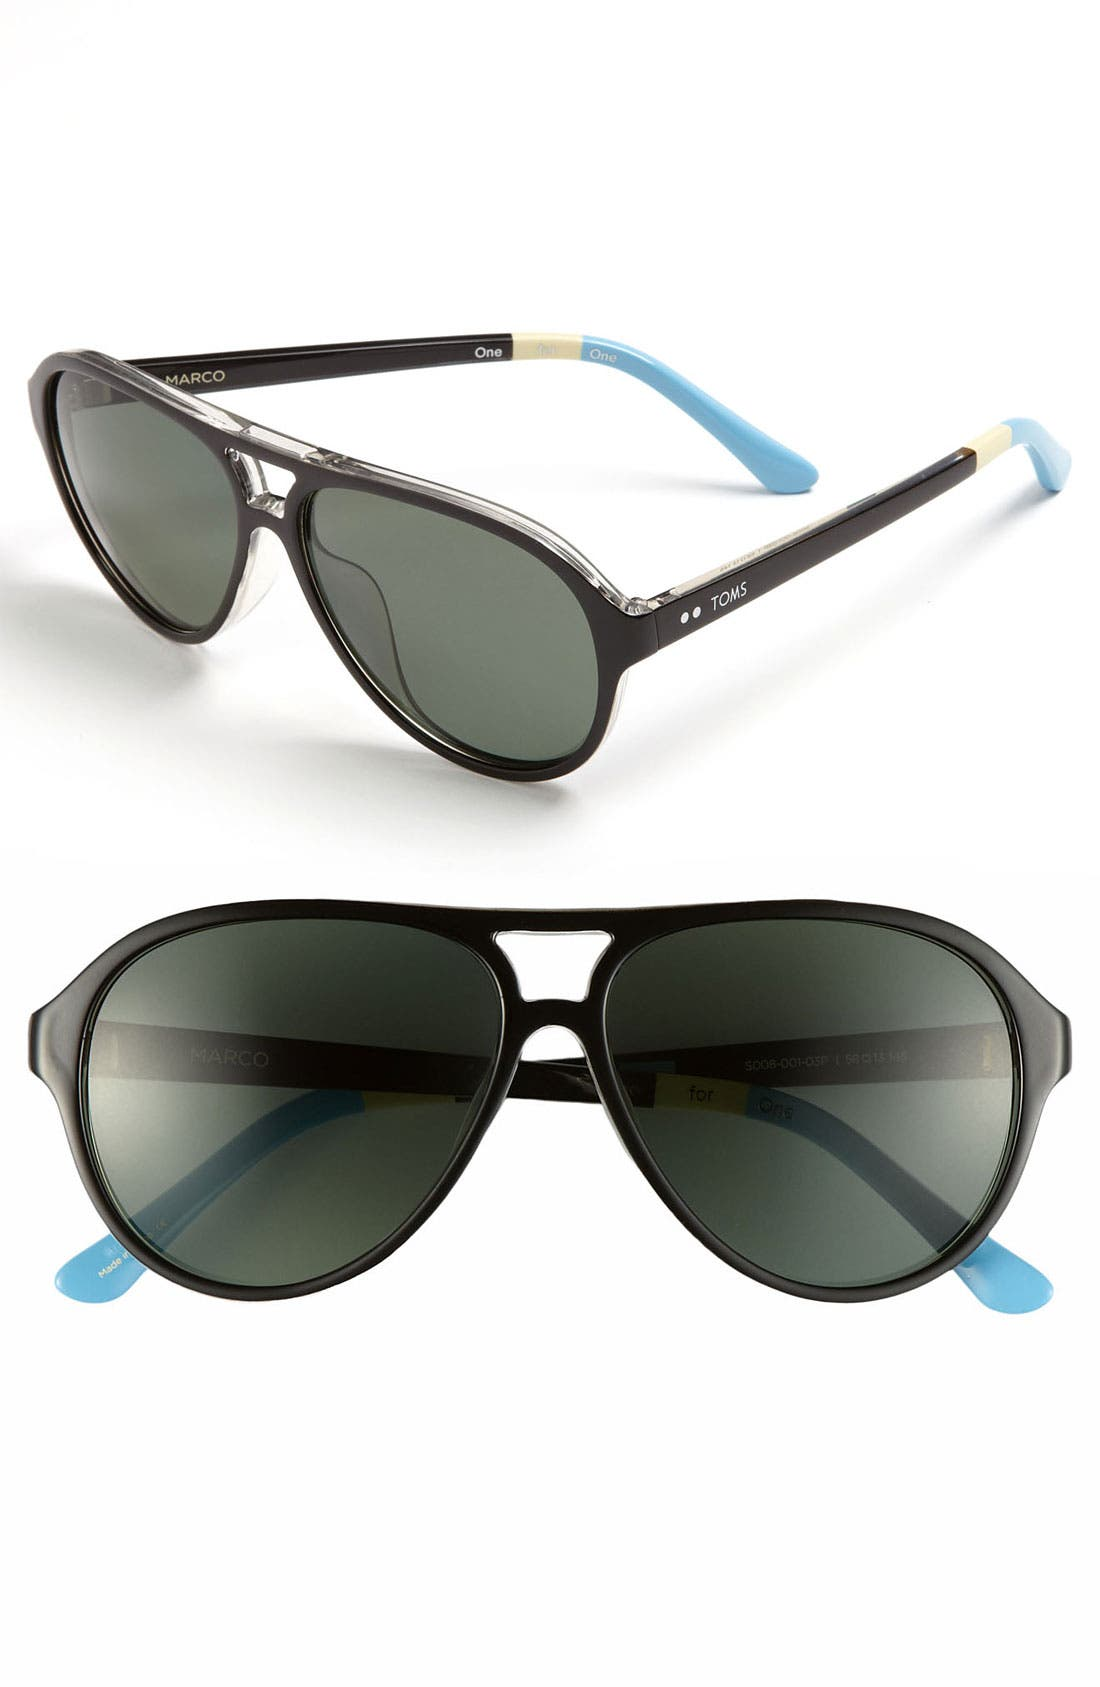 Main Image - TOMS 'Marco - Classic 104' 58mm Polarized Aviator Sunglasses